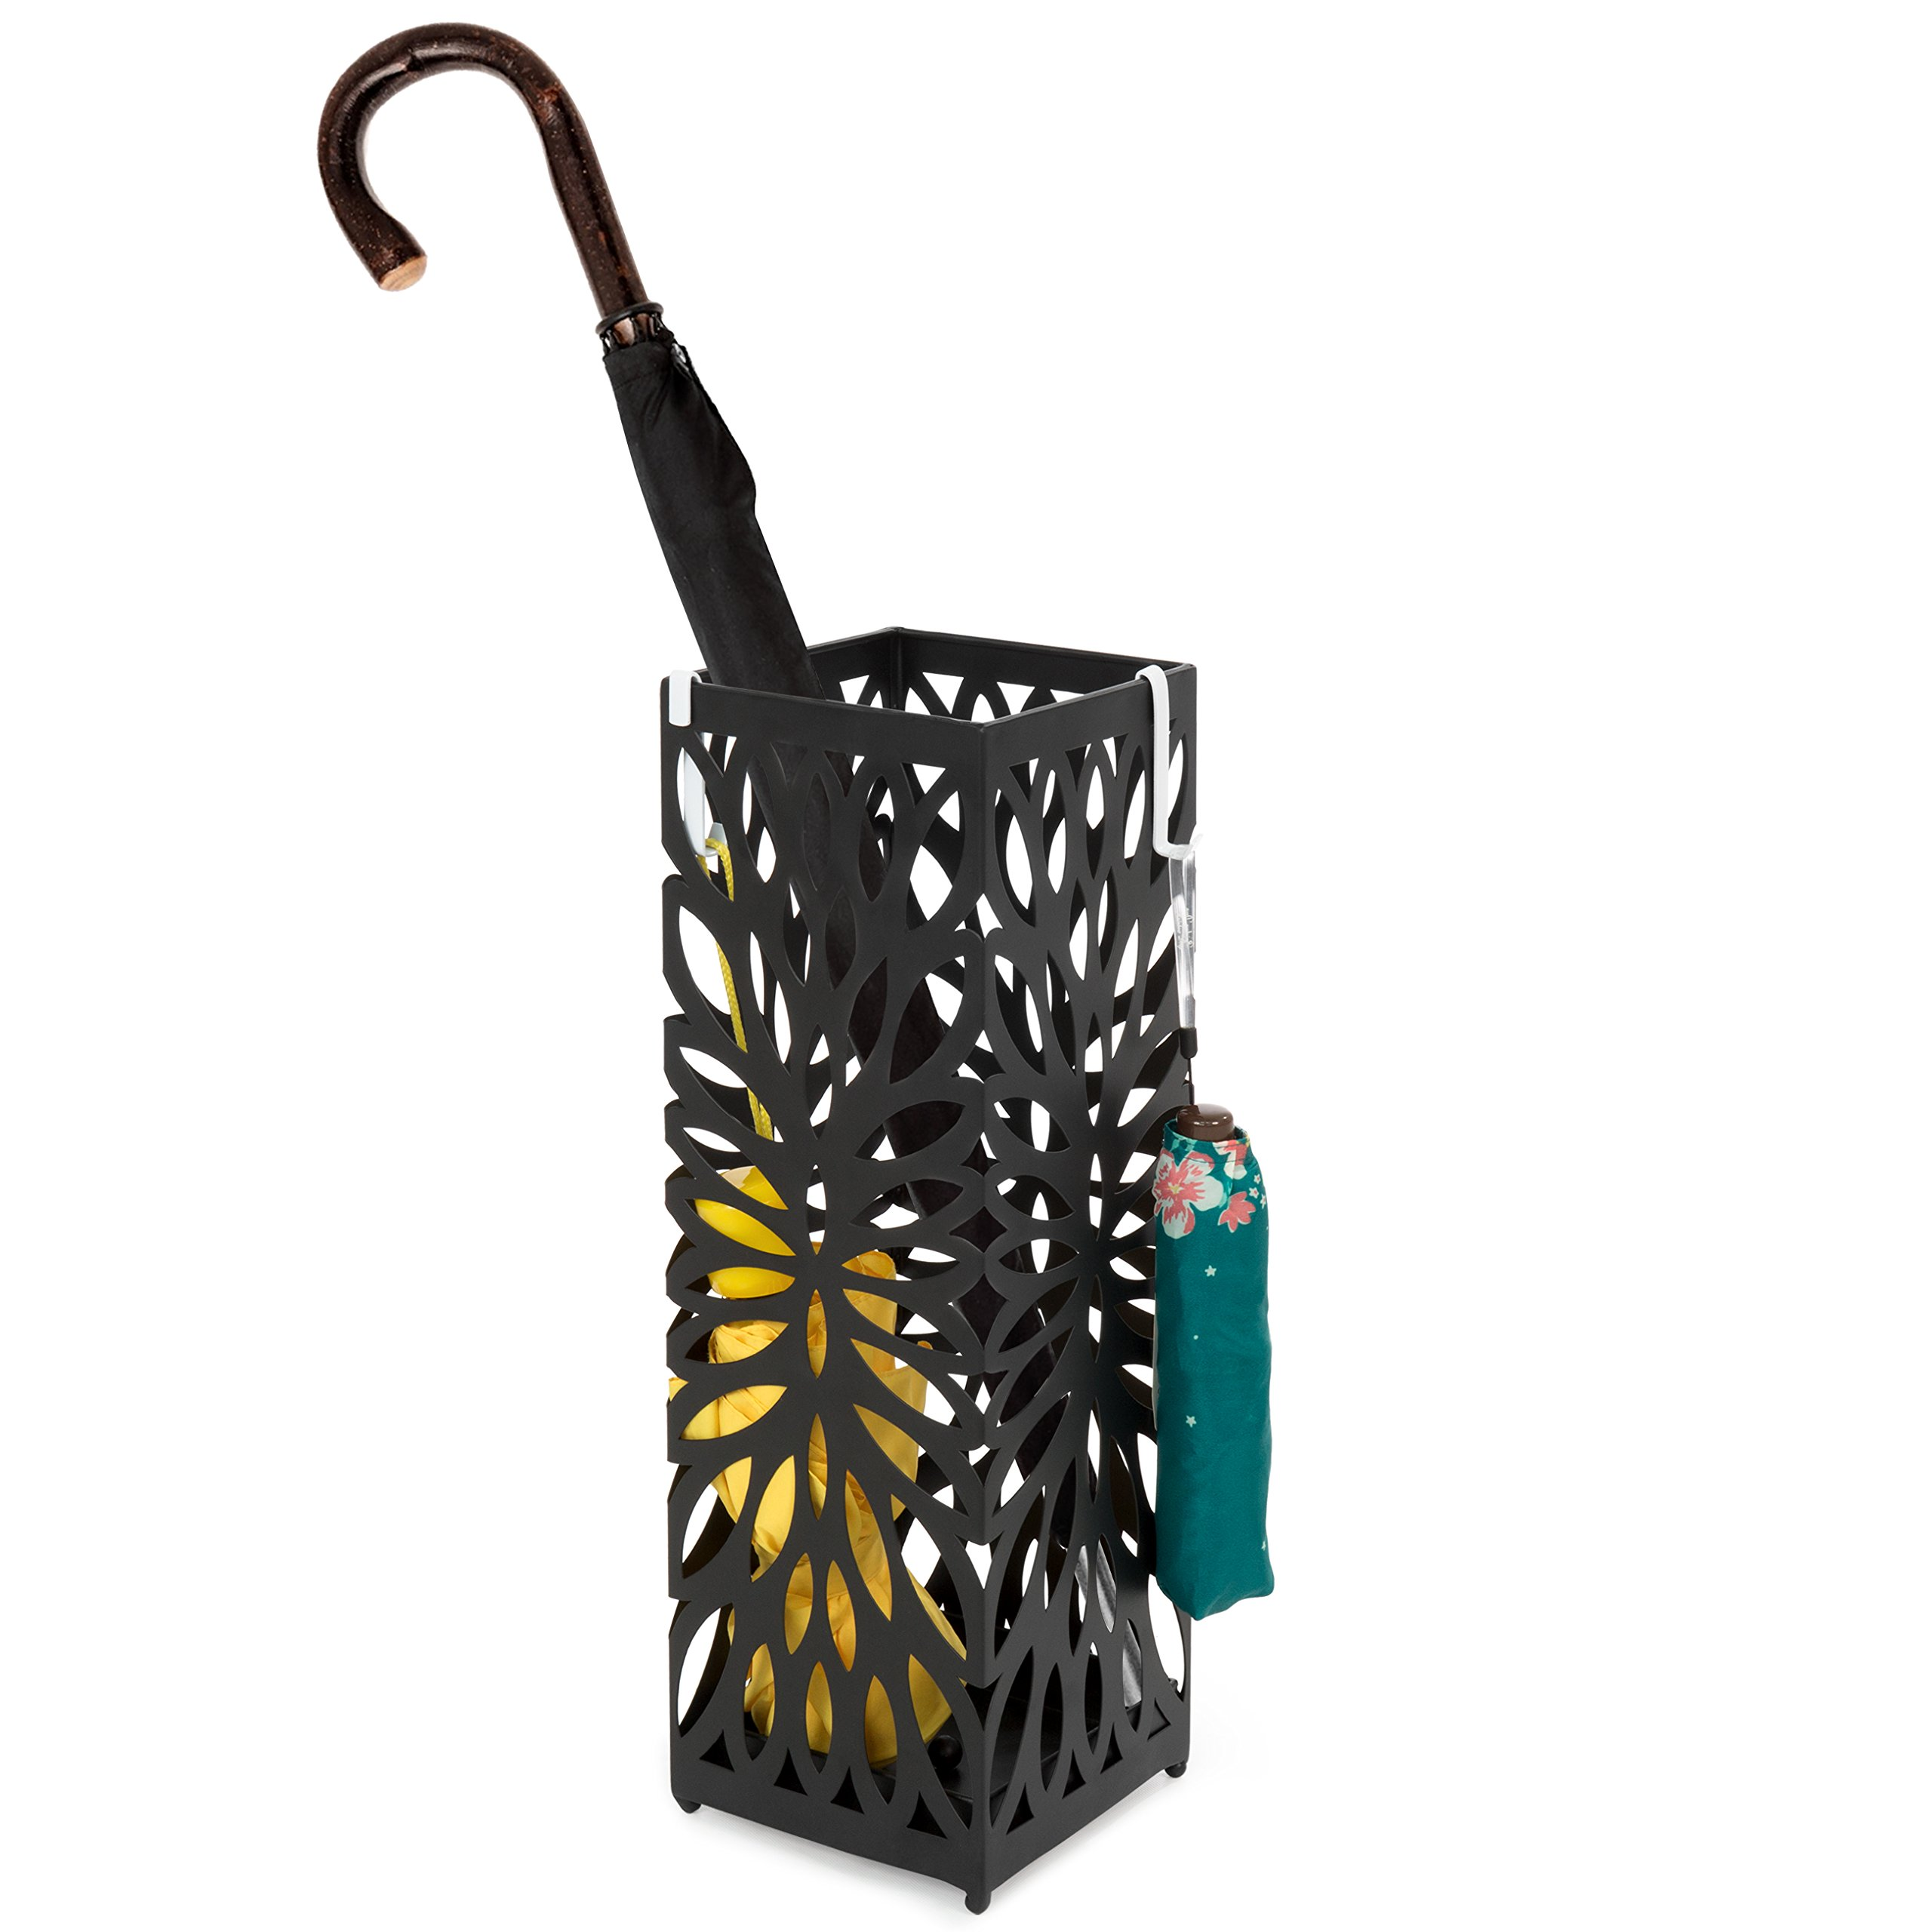 Best Choice Products Modern Square Metal Entryway Umbrella Storage Stand with 2 Hooks, Drain Tray, Floor Protection, Black by Best Choice Products